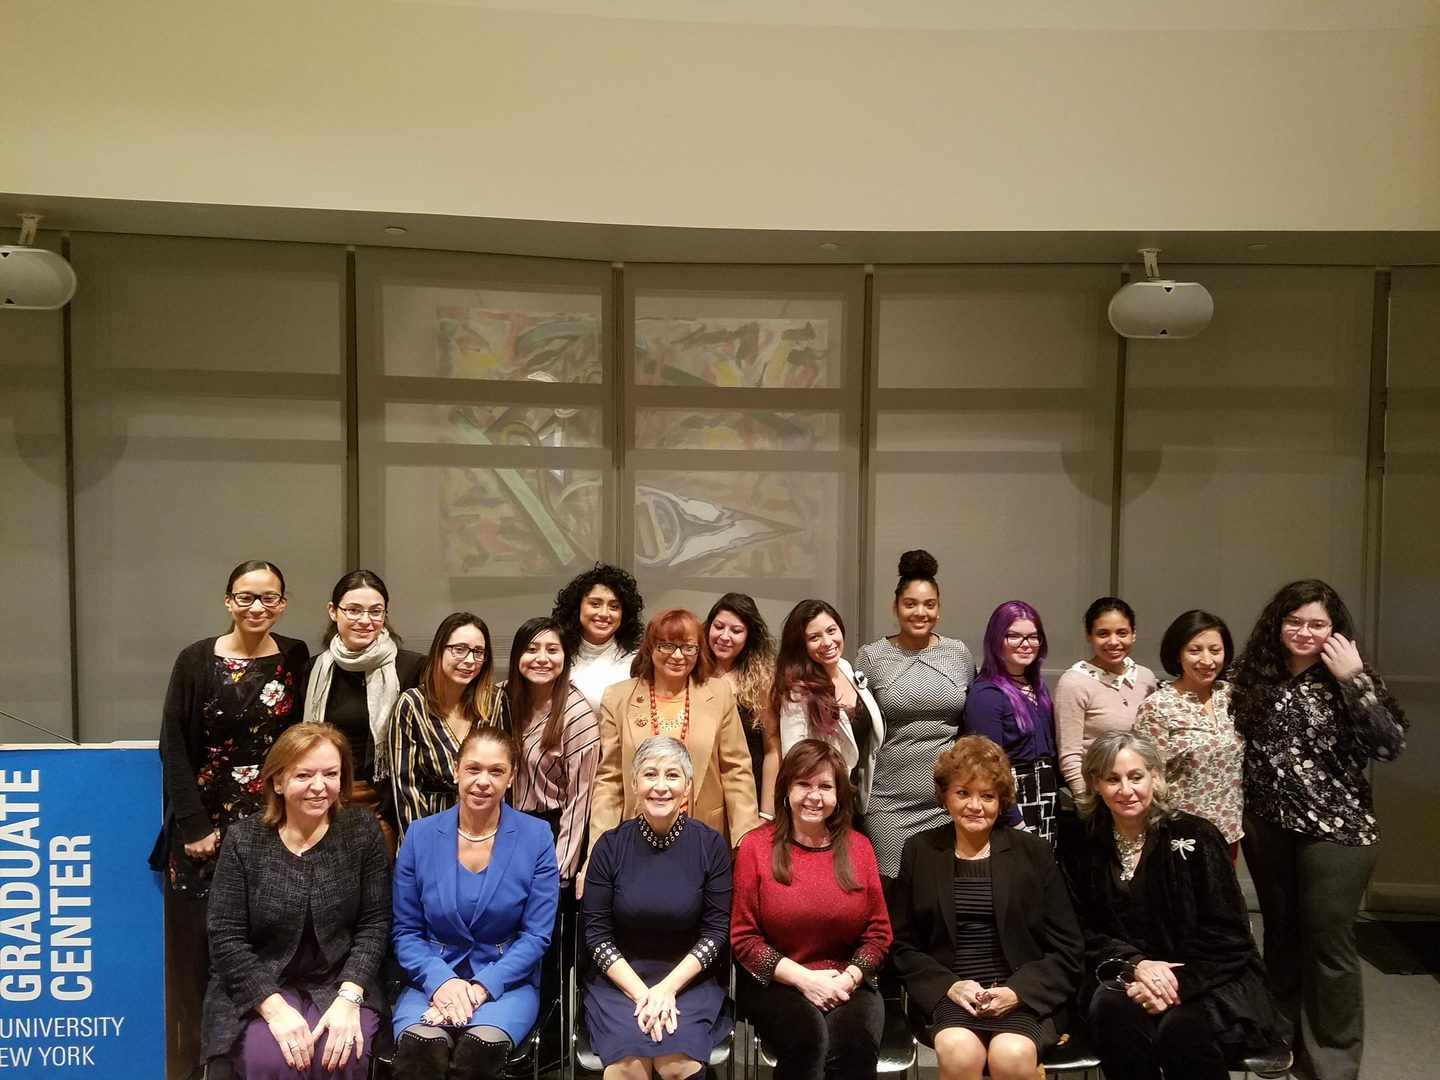 A group photo of women in a panel